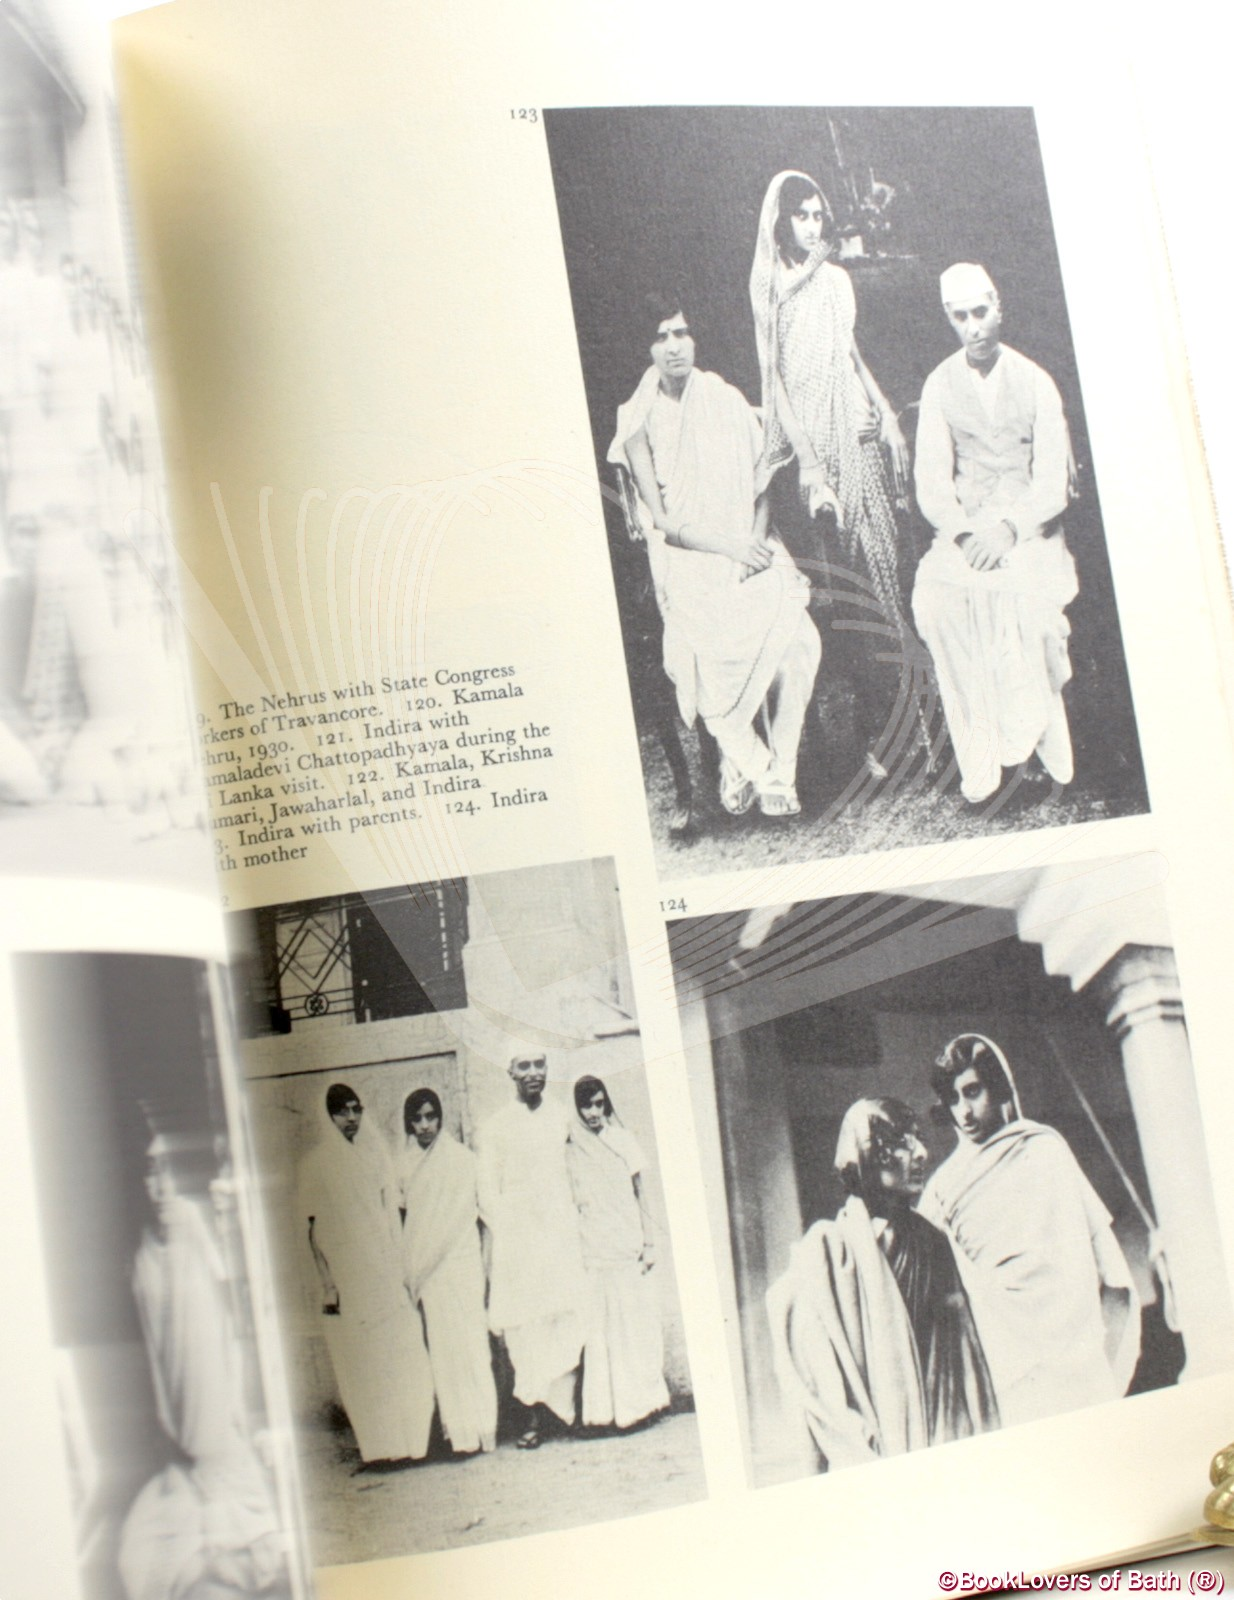 The Spirit of India: Volumes Presented to Shrimati Indira Gandhi